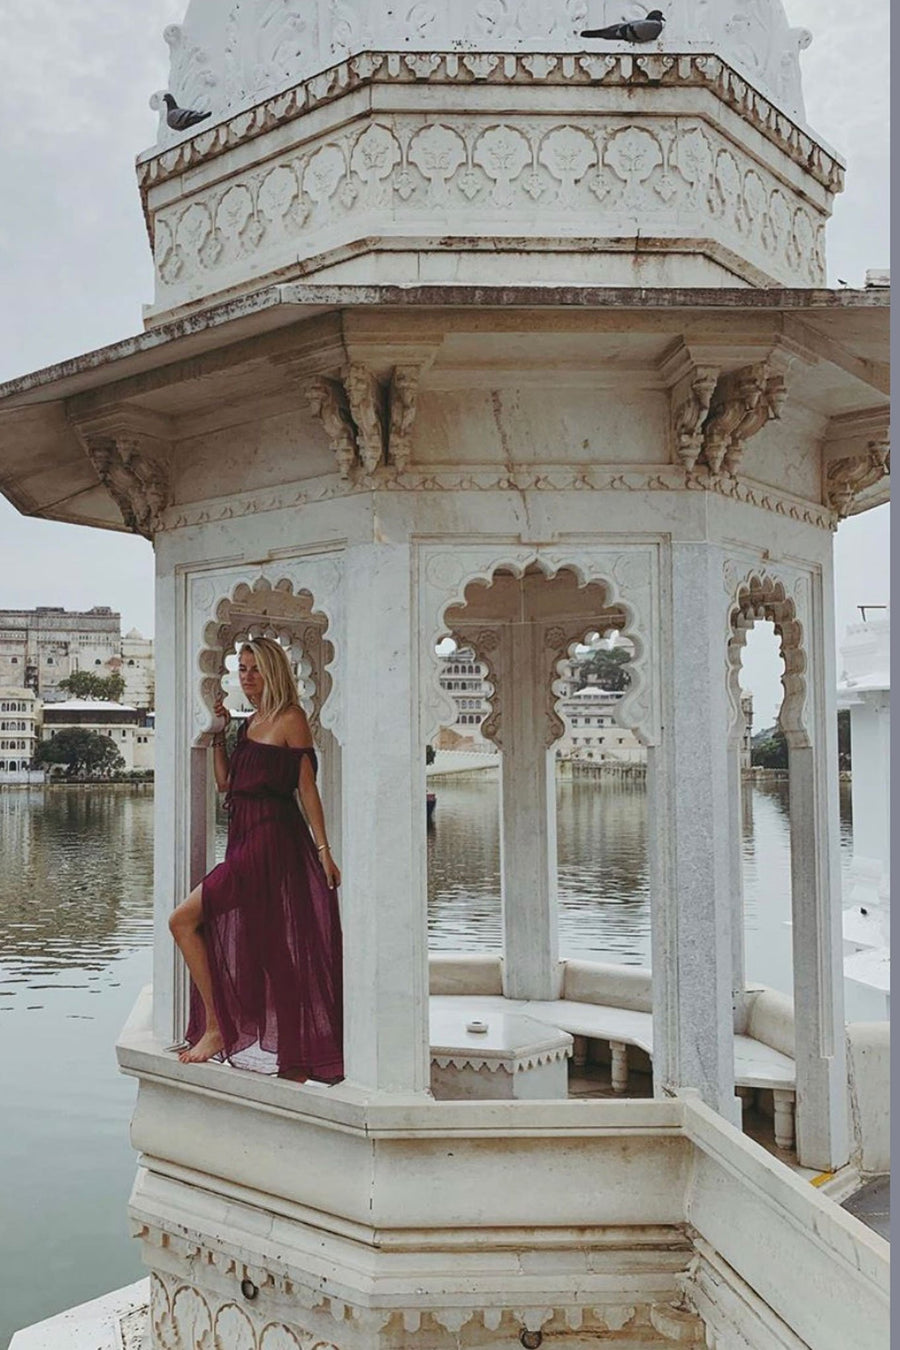 This is a photo of a woman wearing a magenta cotton gauze floor-length maxi coverup that falls off both shoulder and ties around center front chest area and waistline. Photo is taken on a white gazebo type structure overlooking a body of water and dress shows center front leg slit.